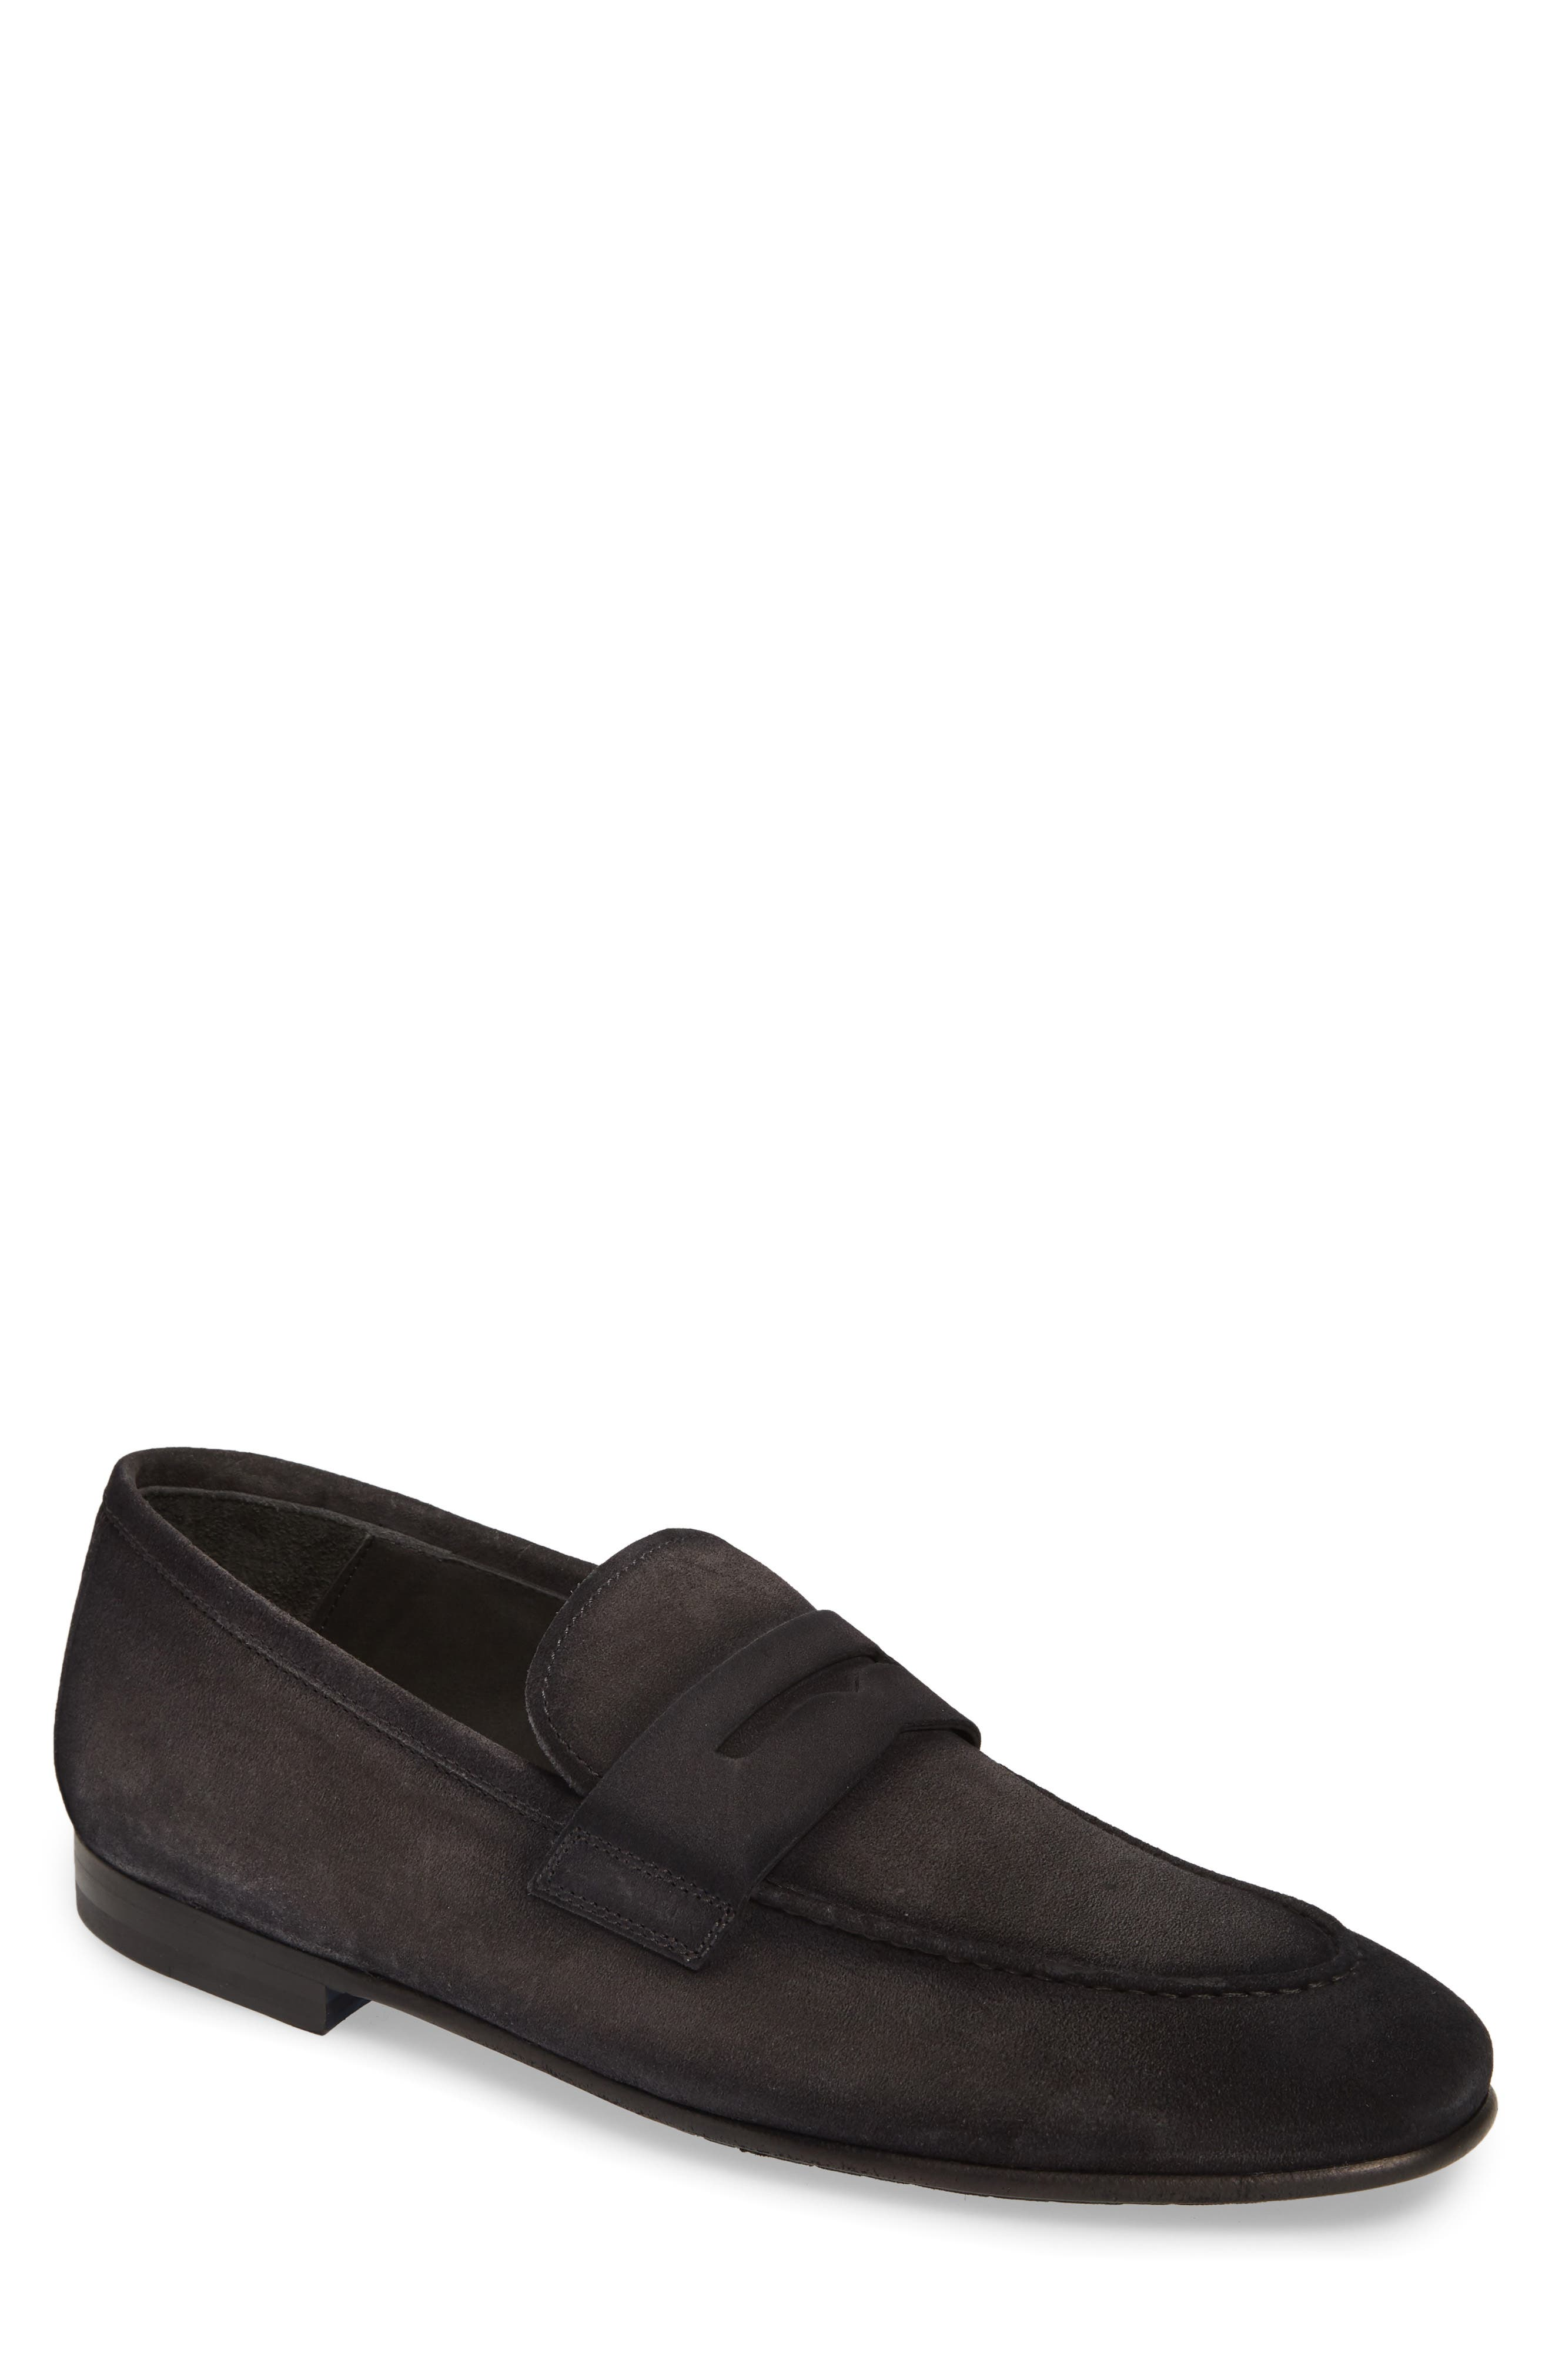 To Boot New York Enzo Apron Toe Penny Loafer- Grey